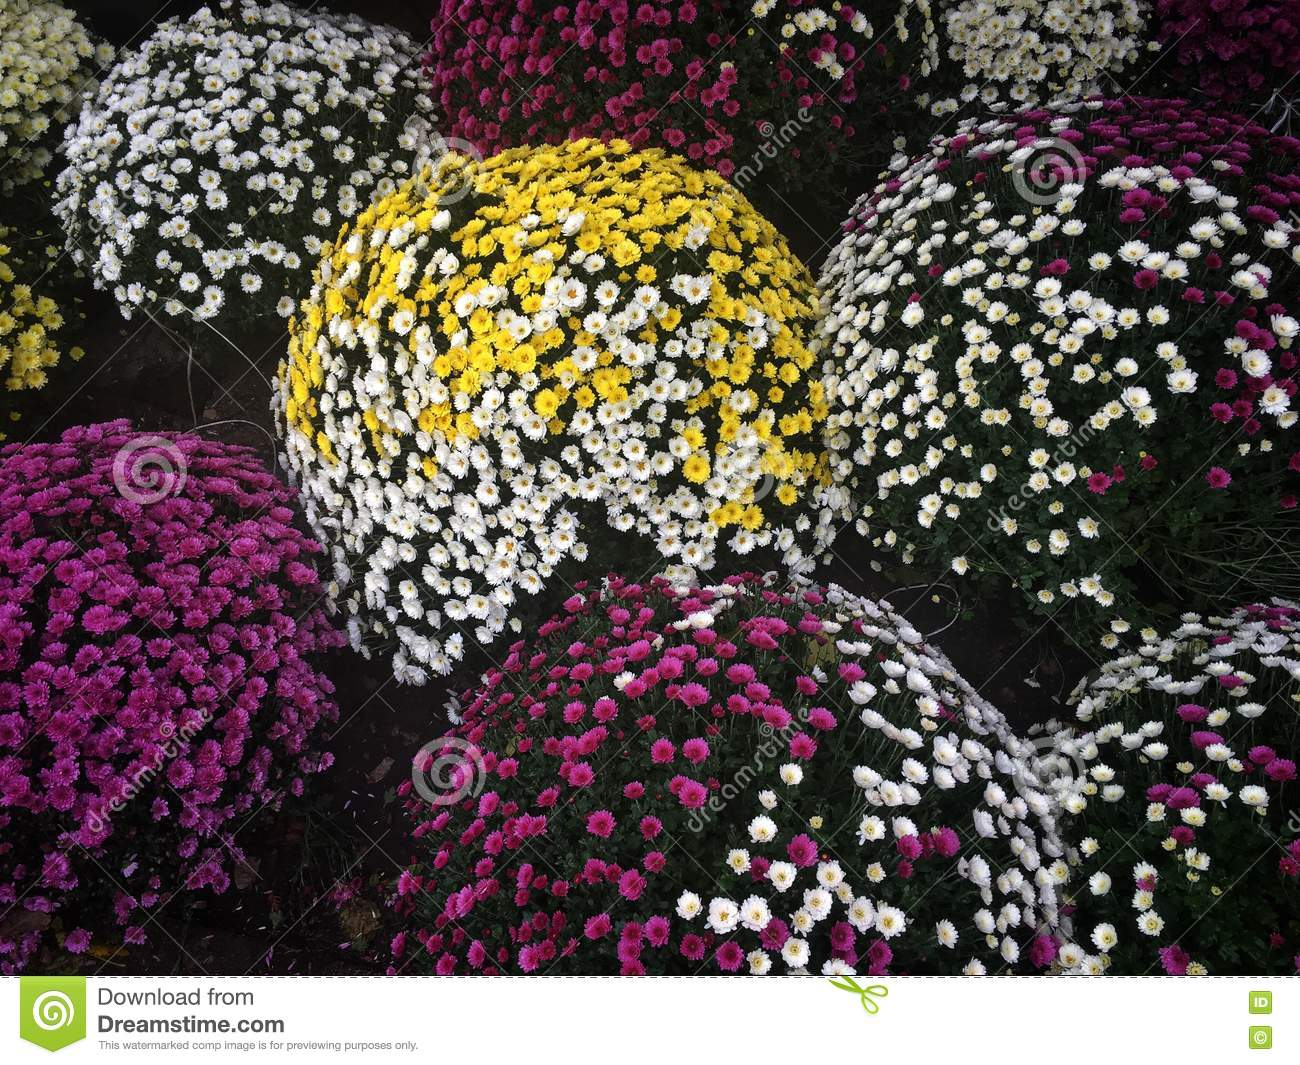 Funeral flowers stock image image of poland warsaw 81980751 download funeral flowers stock image image of poland warsaw 81980751 izmirmasajfo